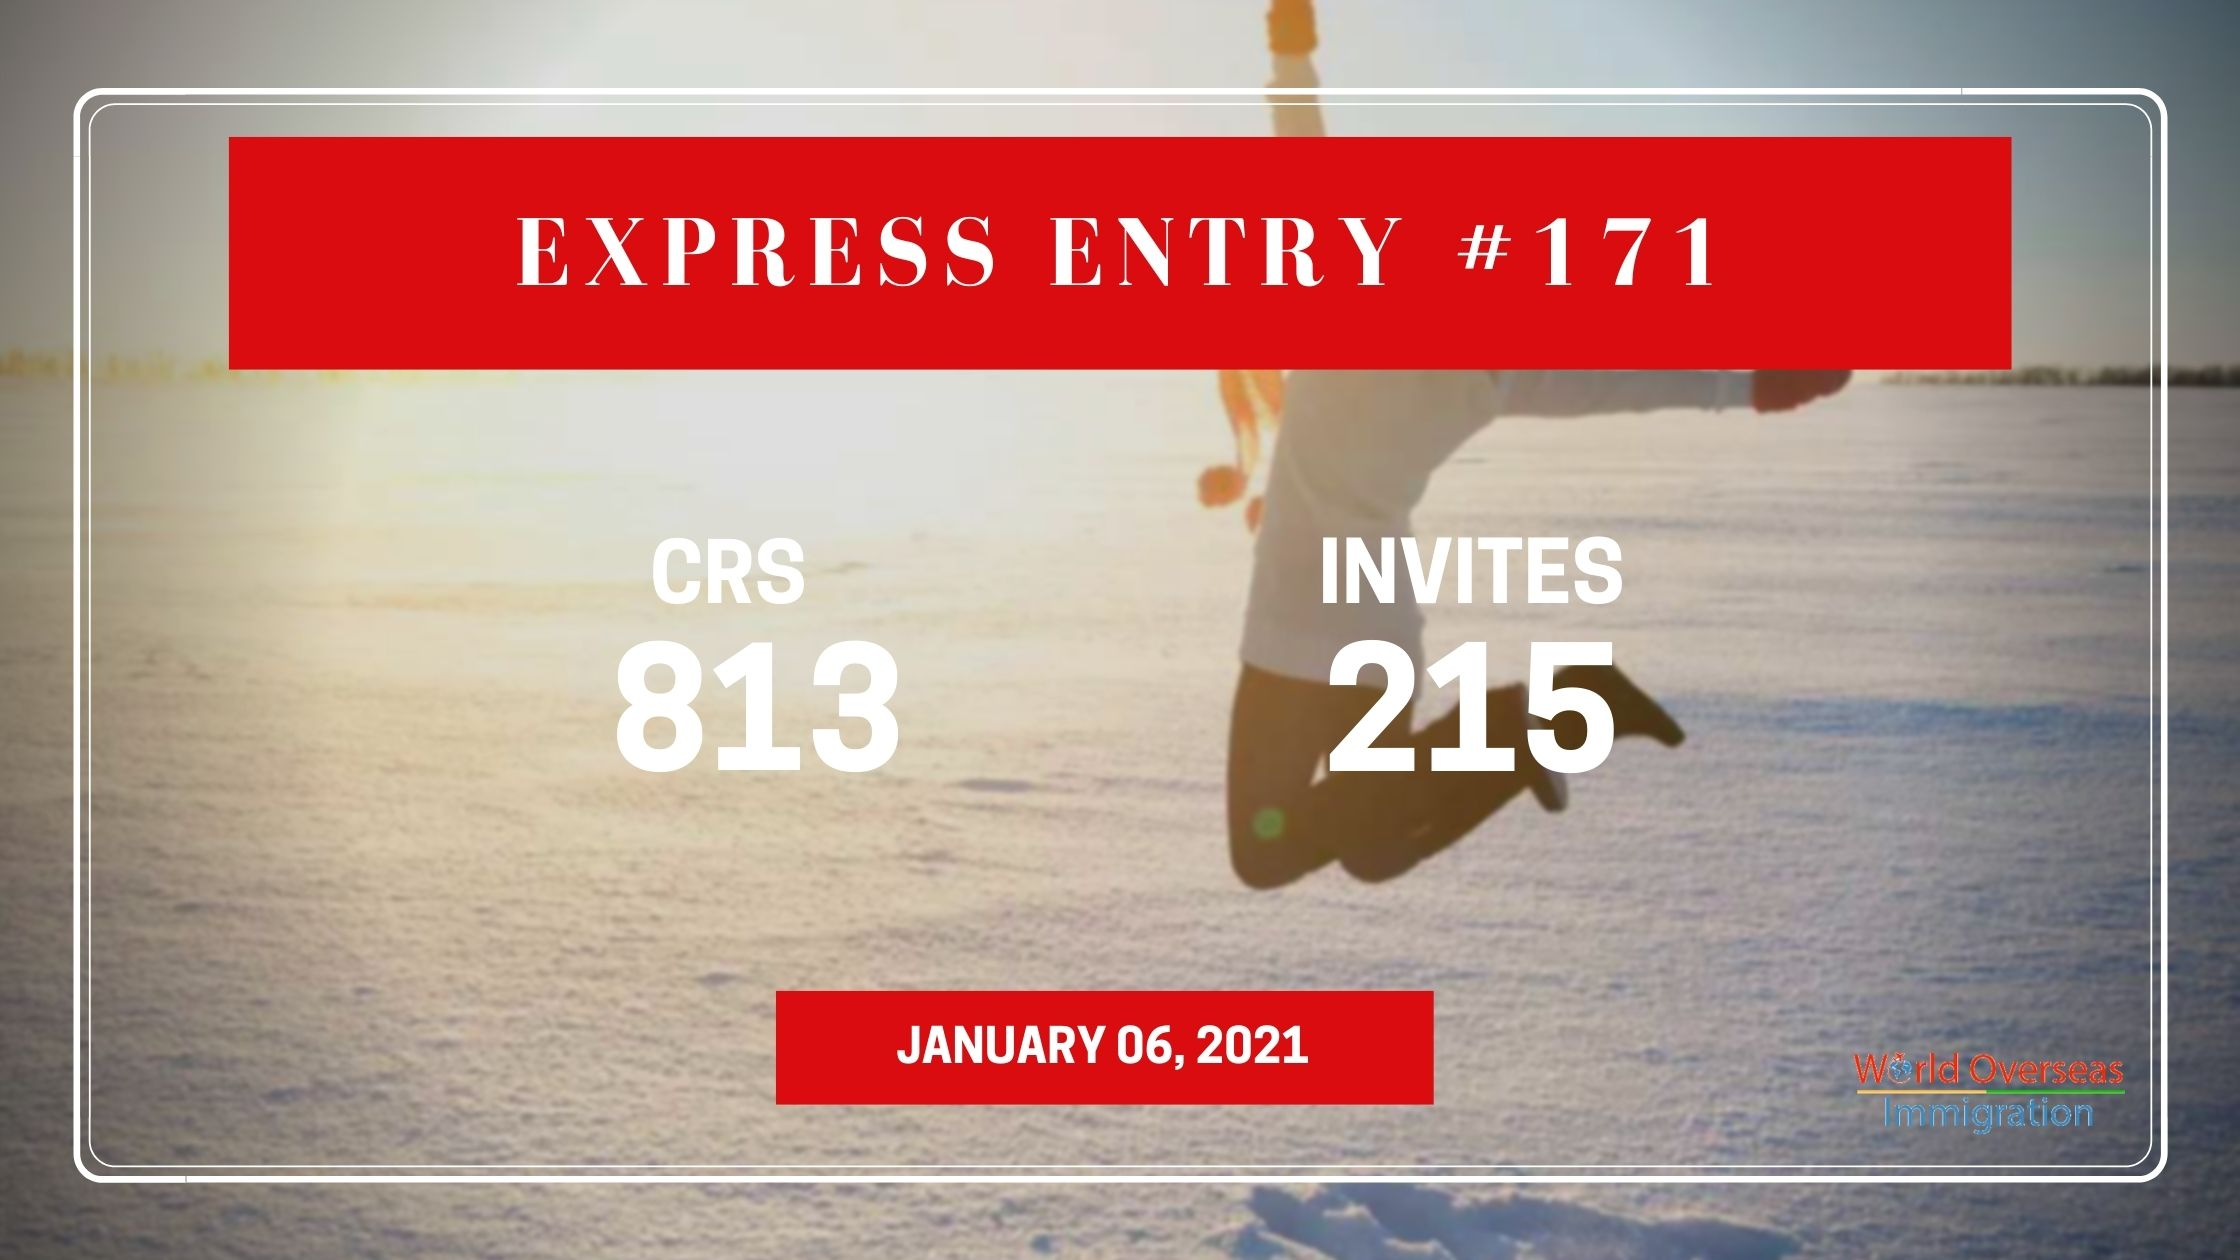 Express Entry #171: 250 ITAs are issued in the new draw